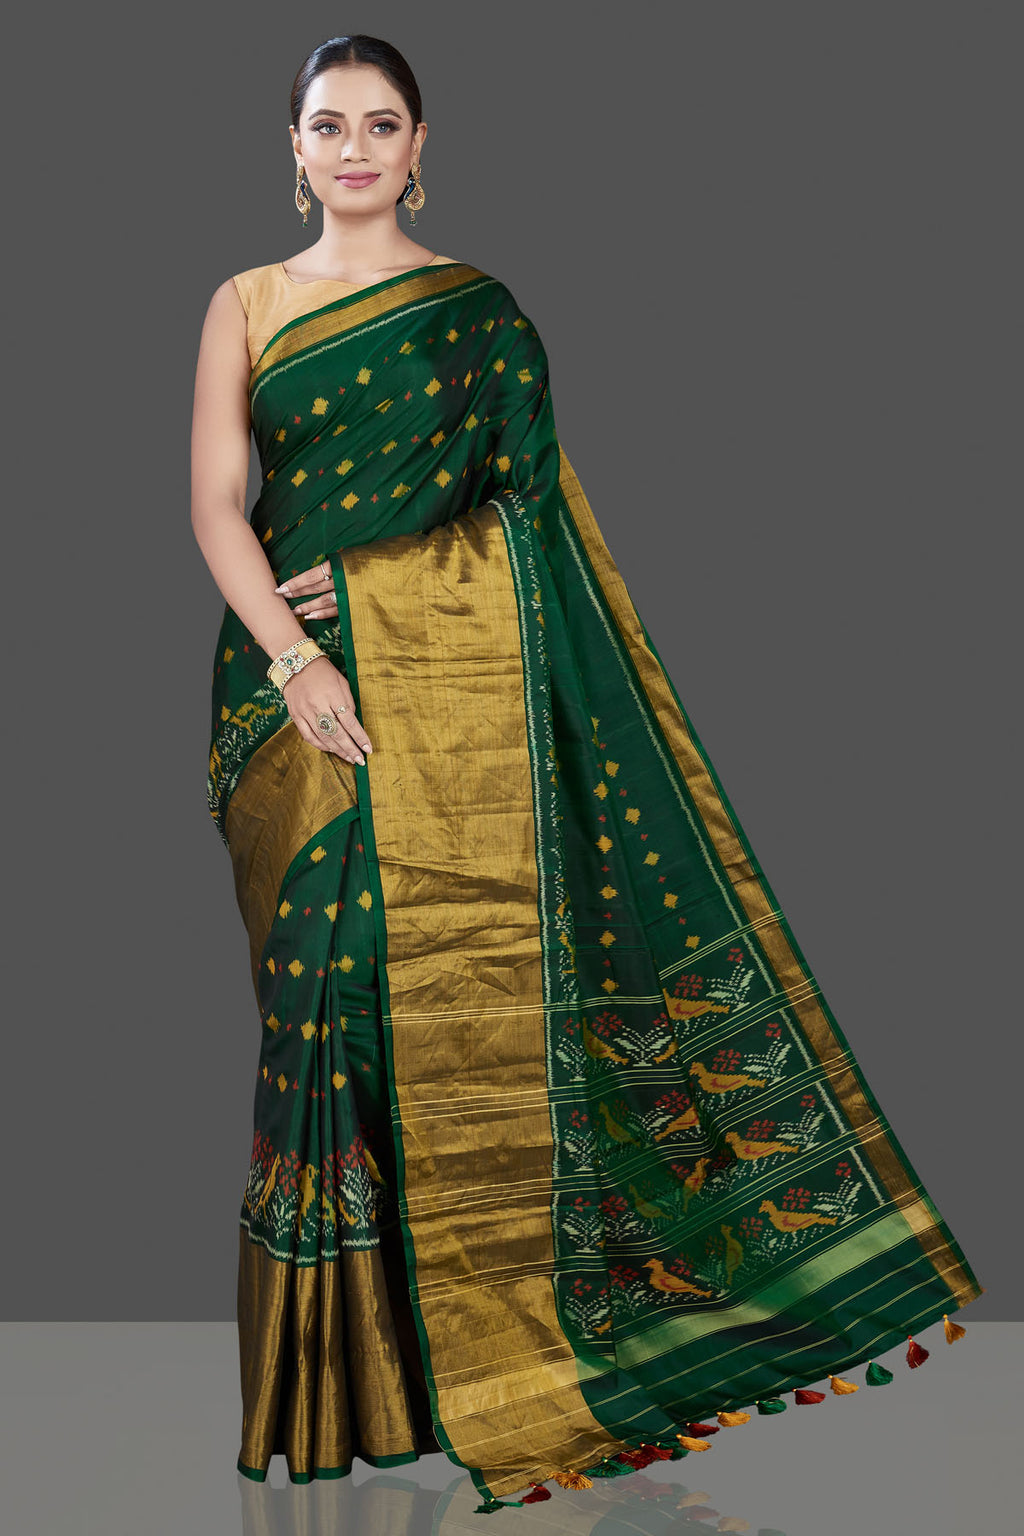 Shop stunning bottle green Patola saree online in USA with golden zari border. Be the talk of the occasion in exquisite designer sarees, pure silk sarees, tussar saris, embroidered sarees, handloom sarees from Pure Elegance Indian fashion store in USA.-full view\